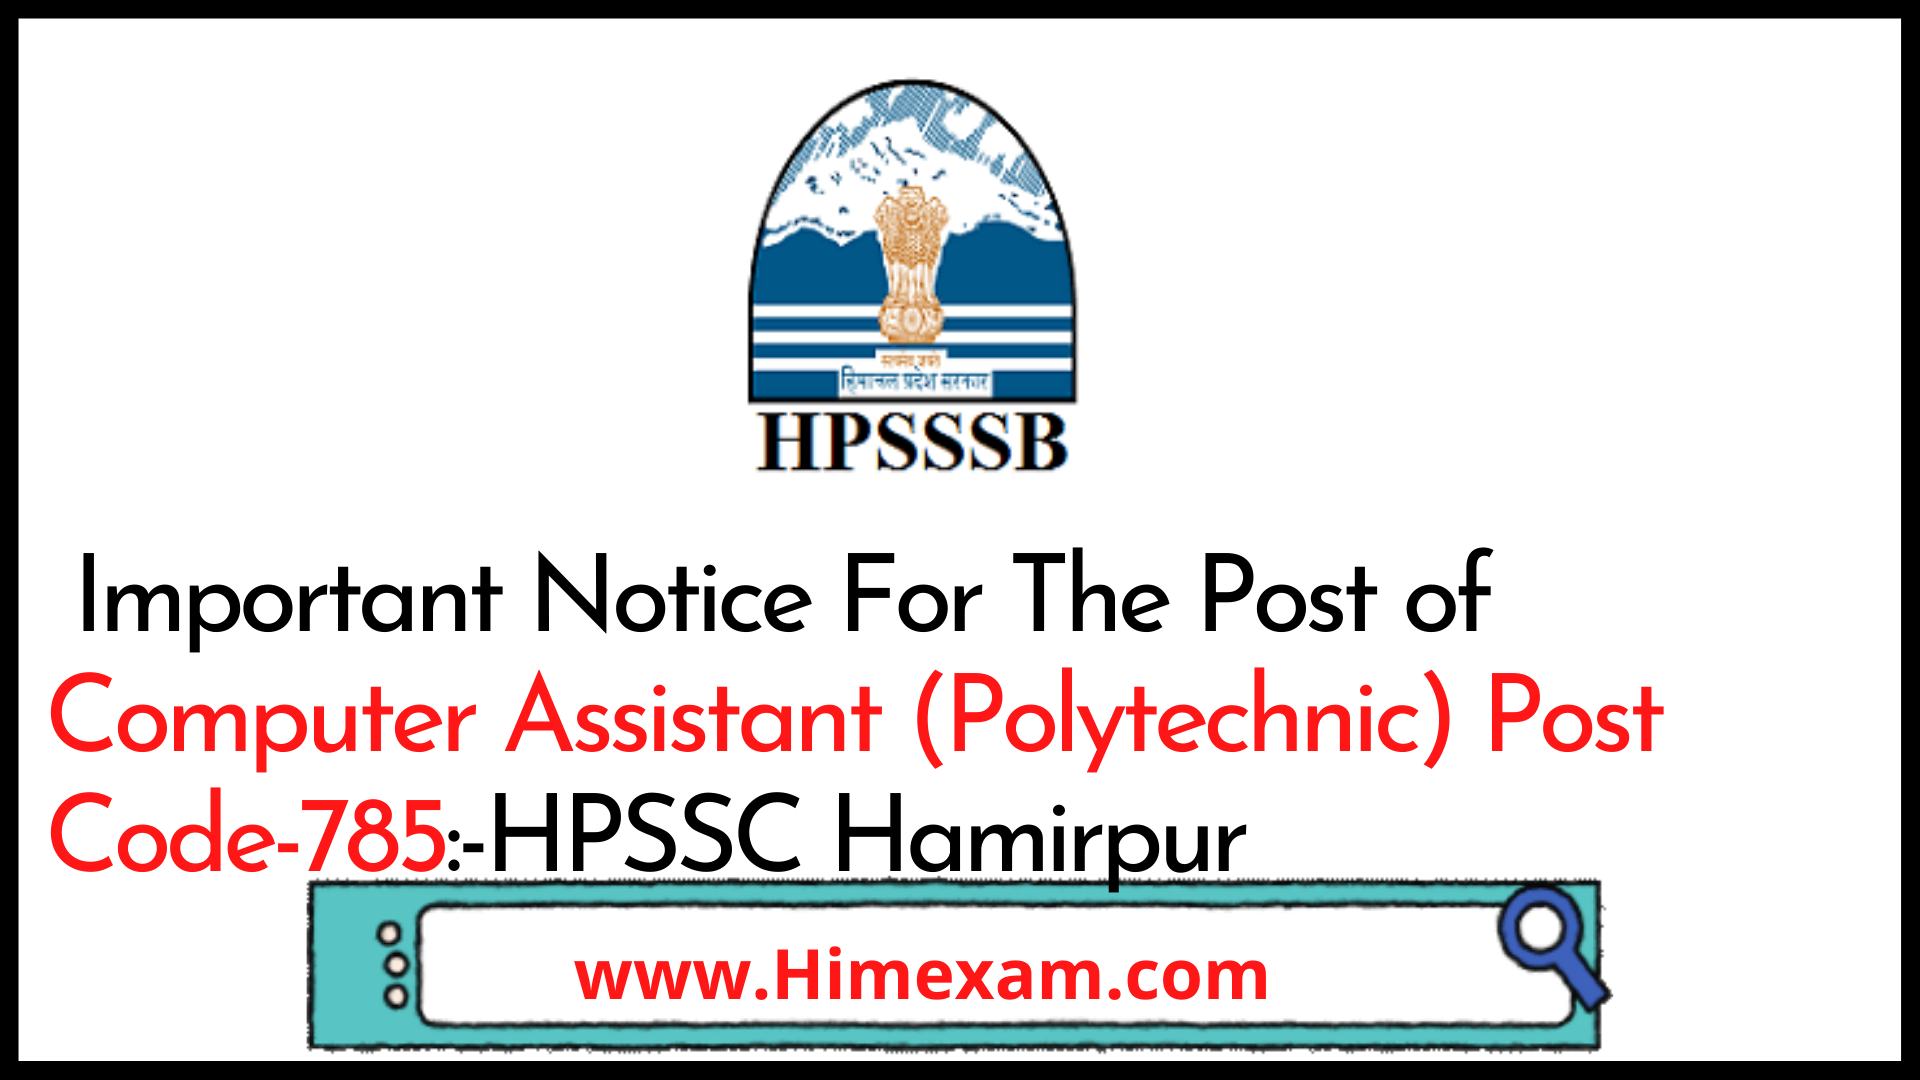 Important Notice For The Post of Computer Assistant (Polytechnic) Post Code-785:-HPSSC Hamirpur